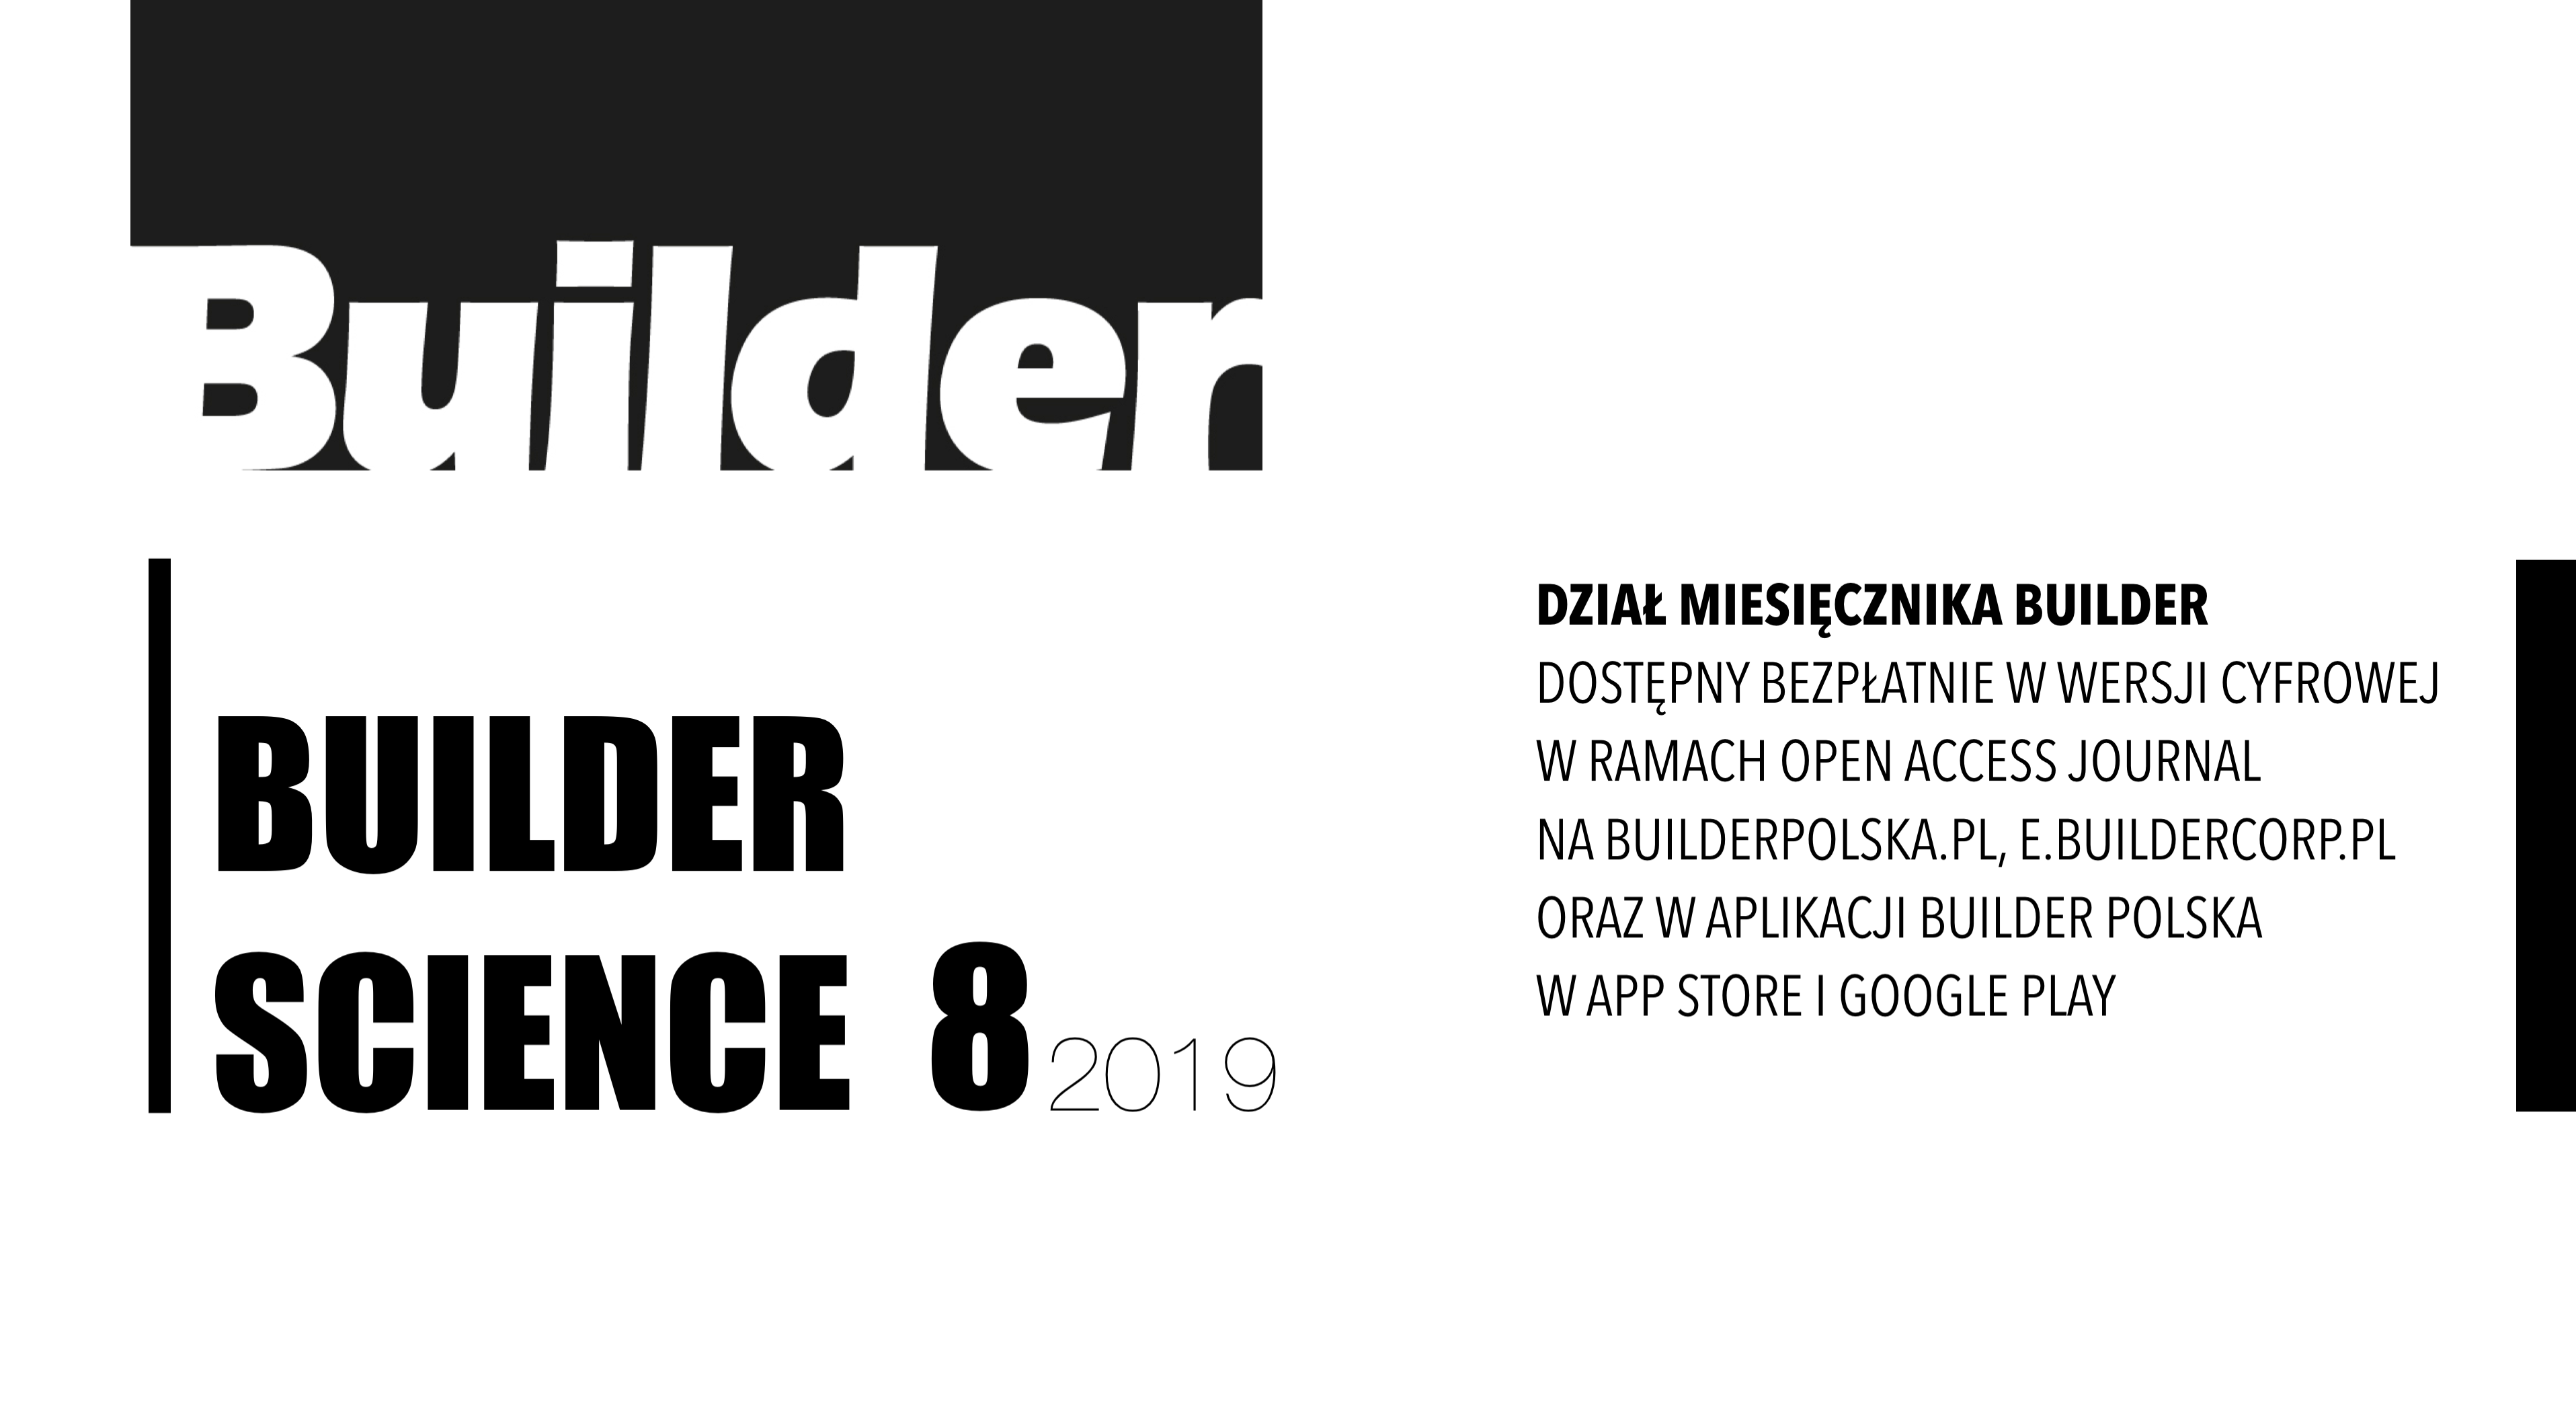 BUILDER SCIENCE 08.2019